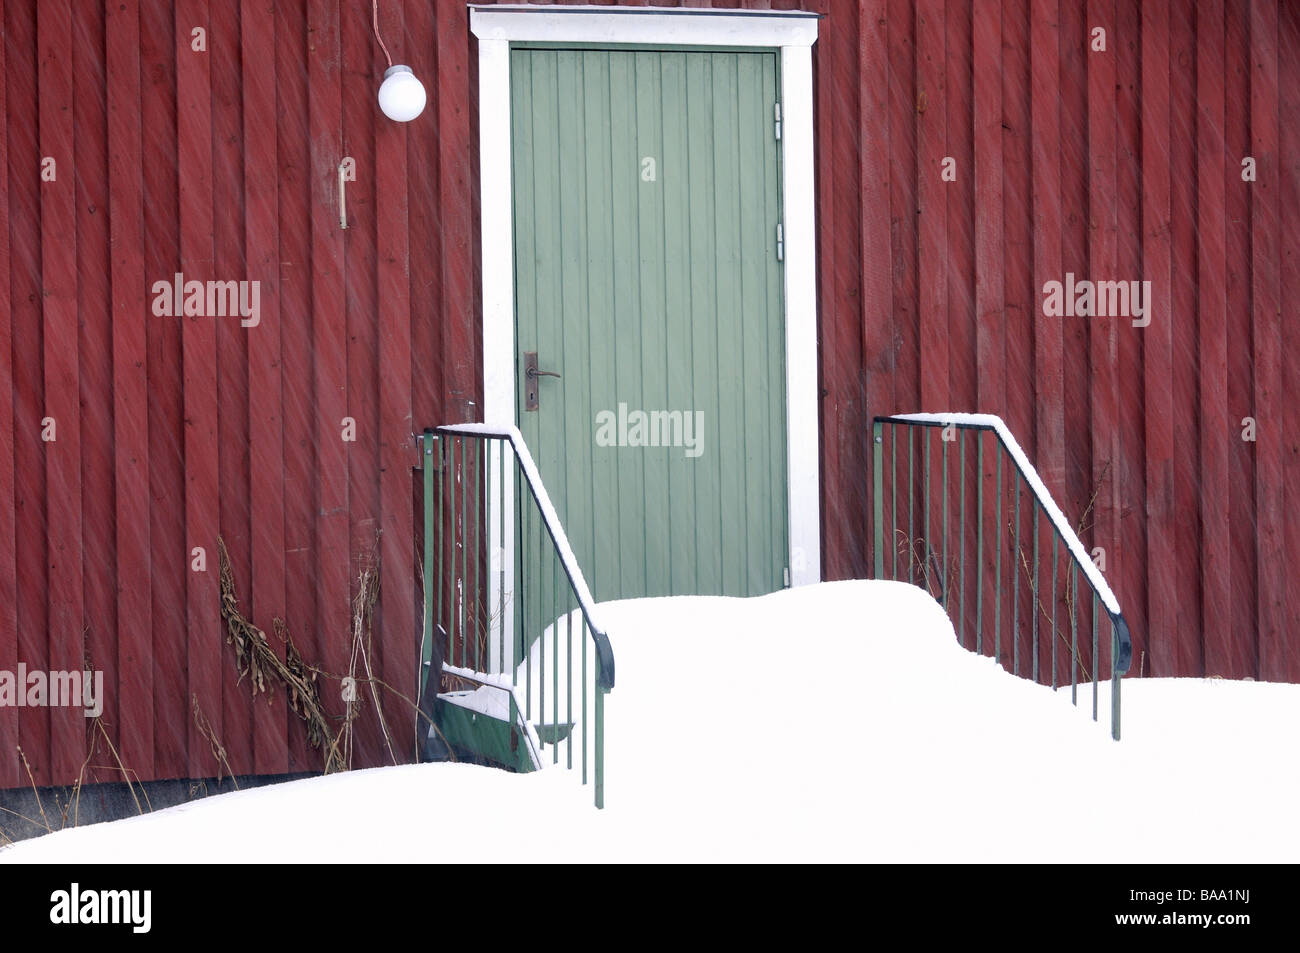 Steps covered with snow Dalarna Sweden - Stock Image